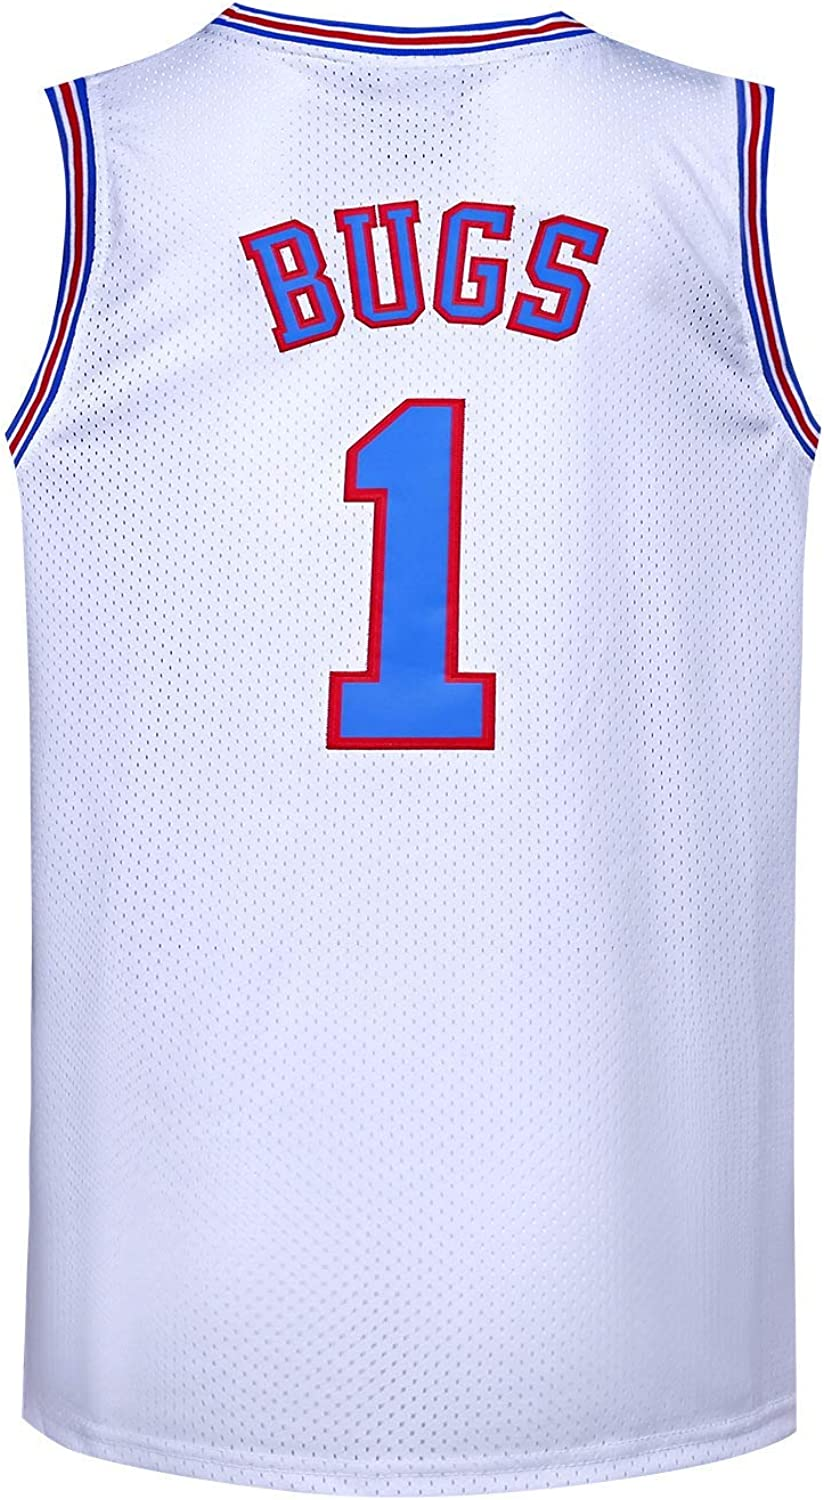 Youth Basketball Jersey #1 Moive Space Jam Jerseys Bugs Shirts for Kids